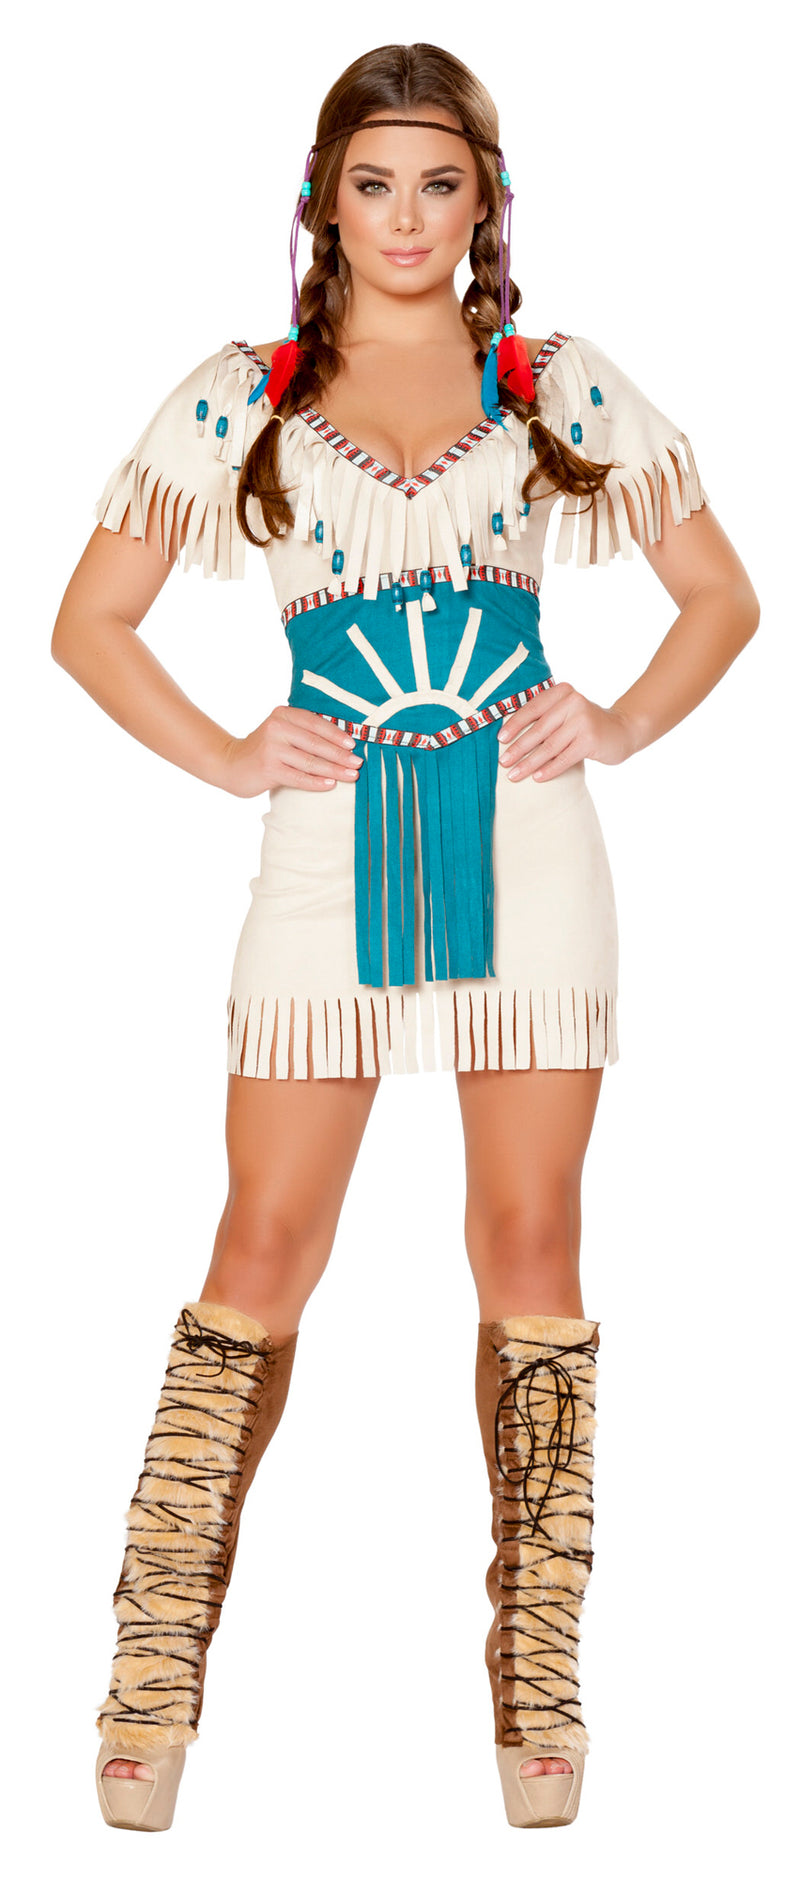 RM-4708 Tribal Babe Indian Costume front